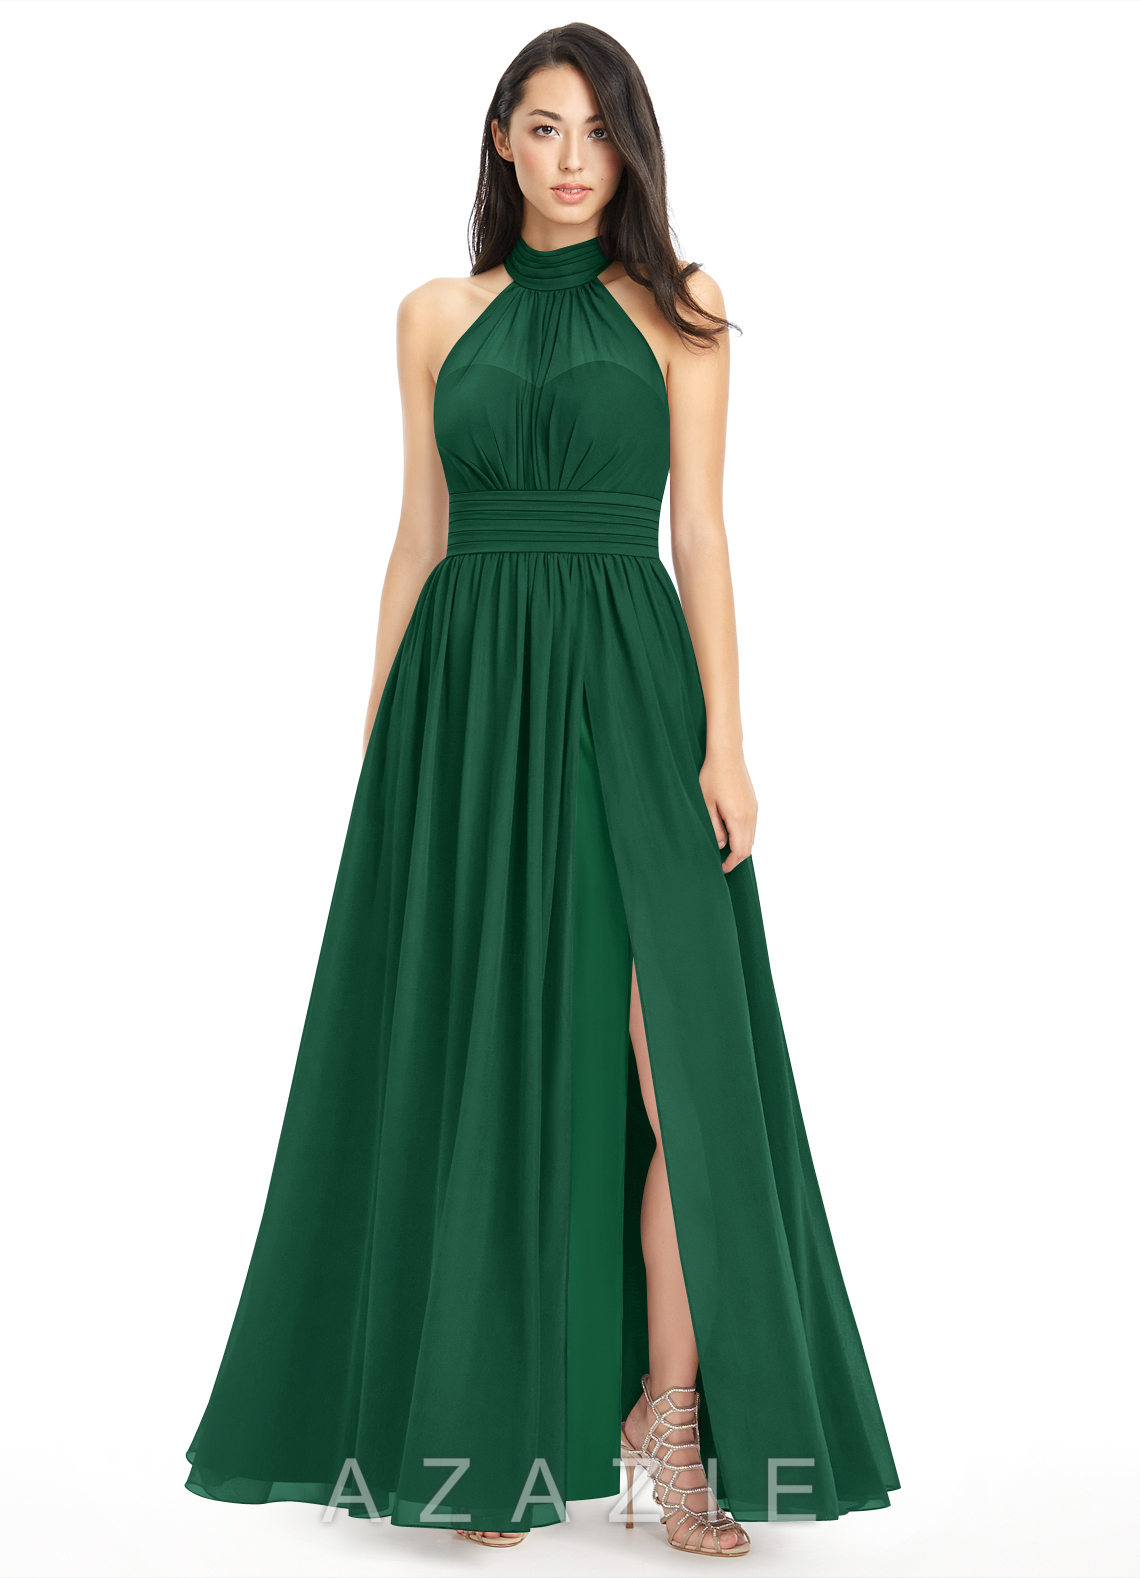 Azazie iman bridesmaid dress azazie color dark green ombrellifo Choice Image